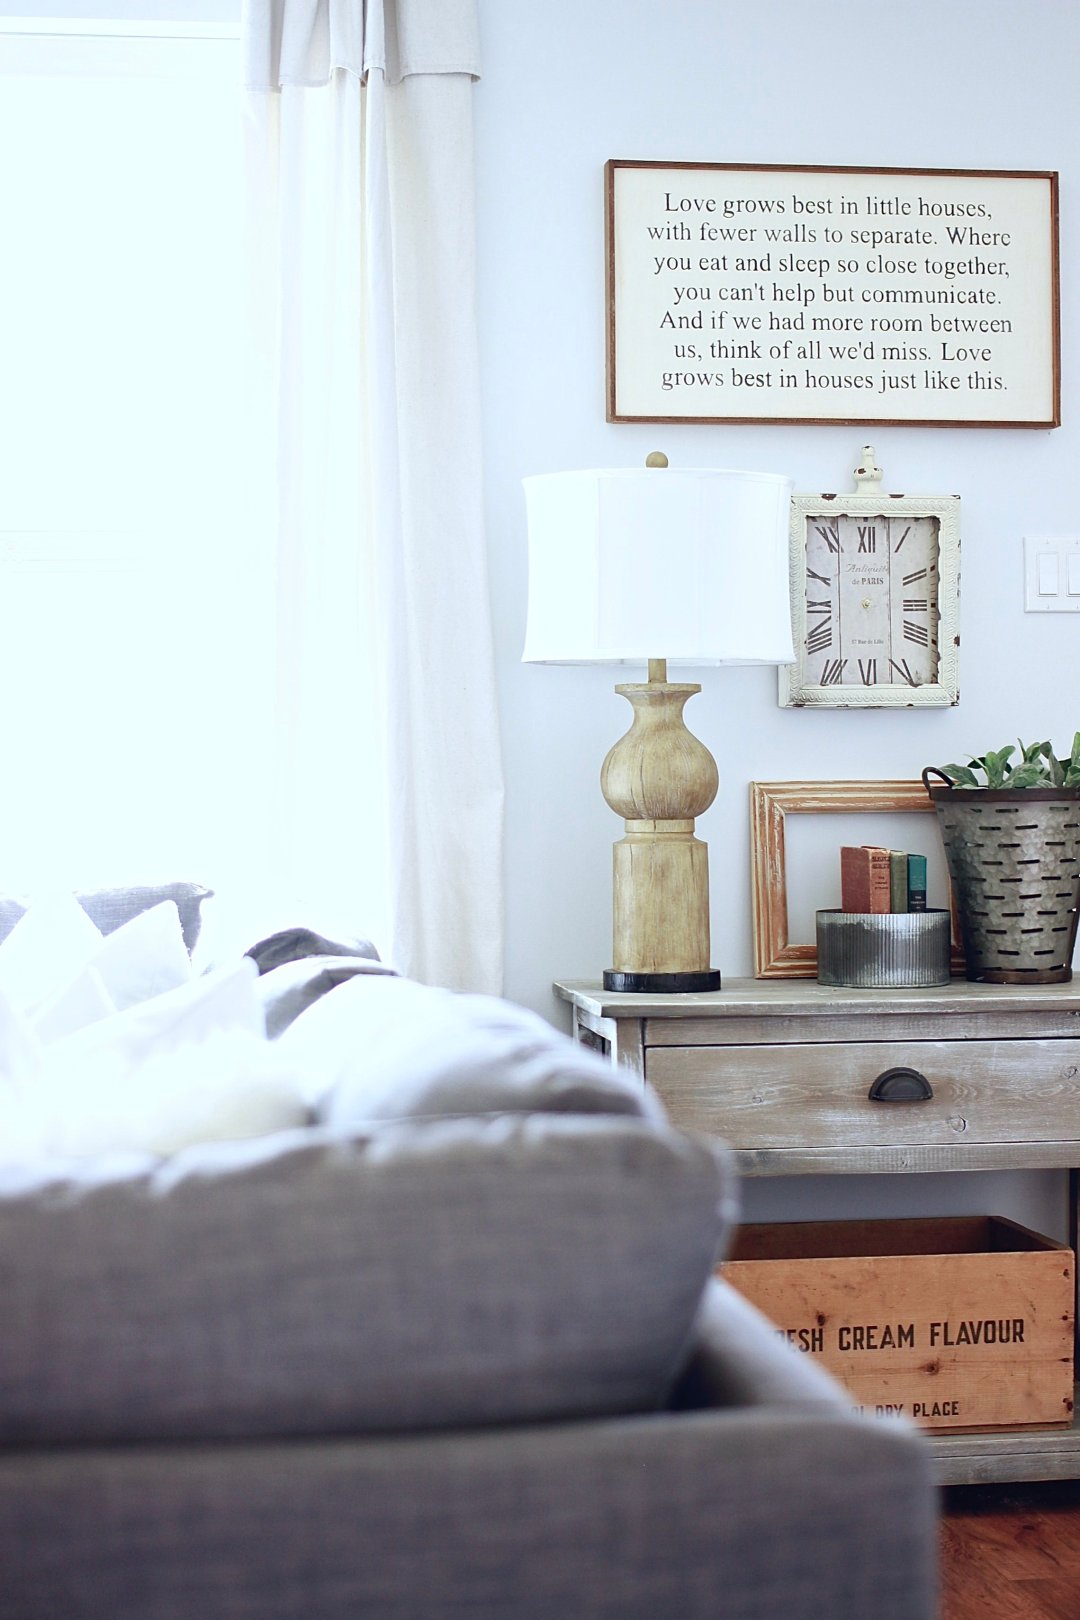 Collaboration between the rugged home and decor by Nature. Barn Wood Verse art www.whitepicketfarmhouse.com